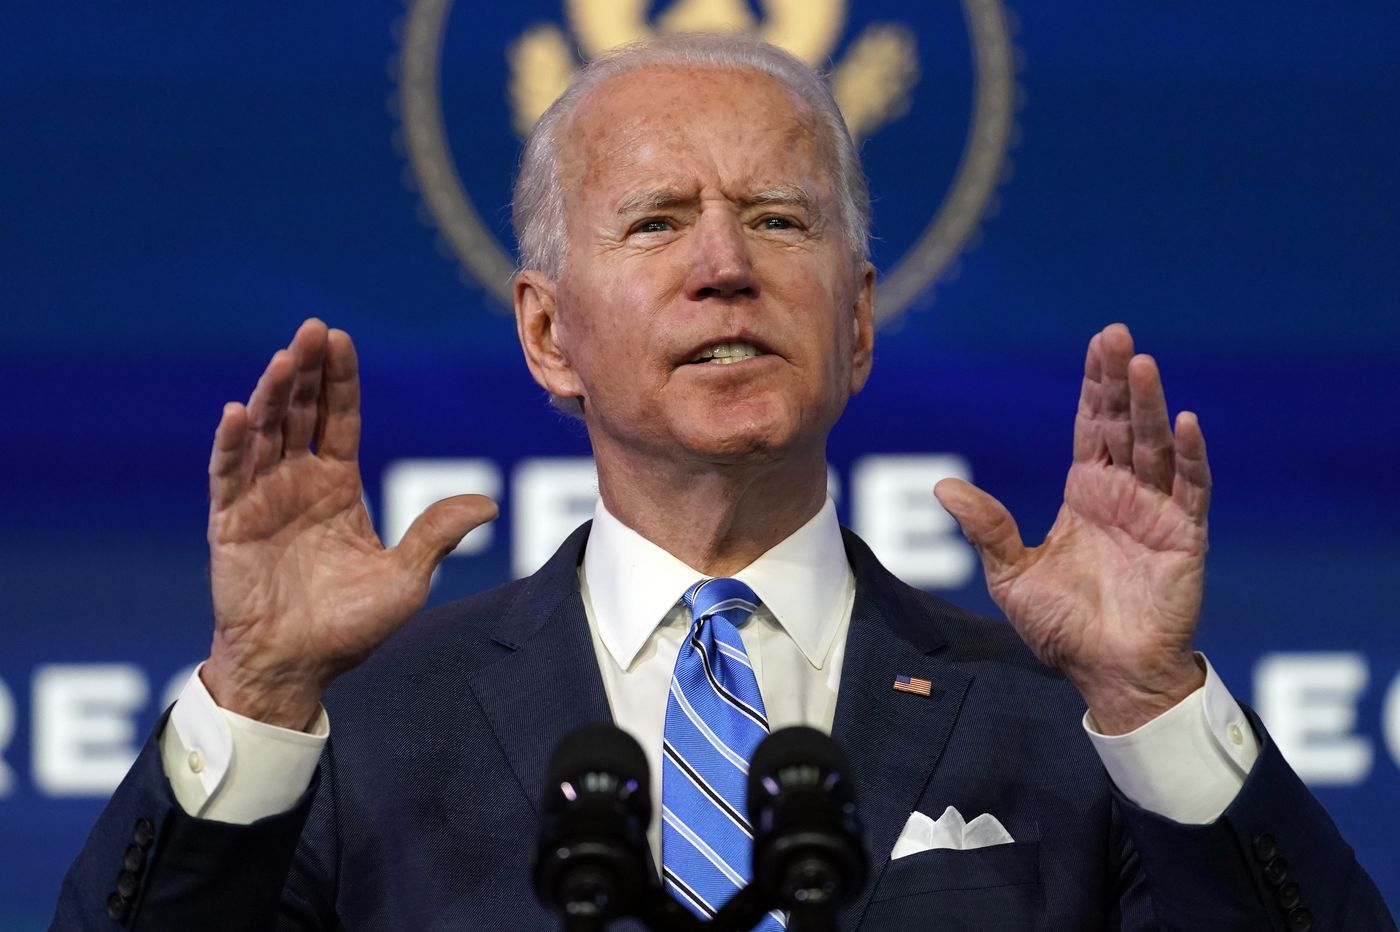 Biden unveils a $1.9 trillion plan to stem the coronavirus and steady the economy